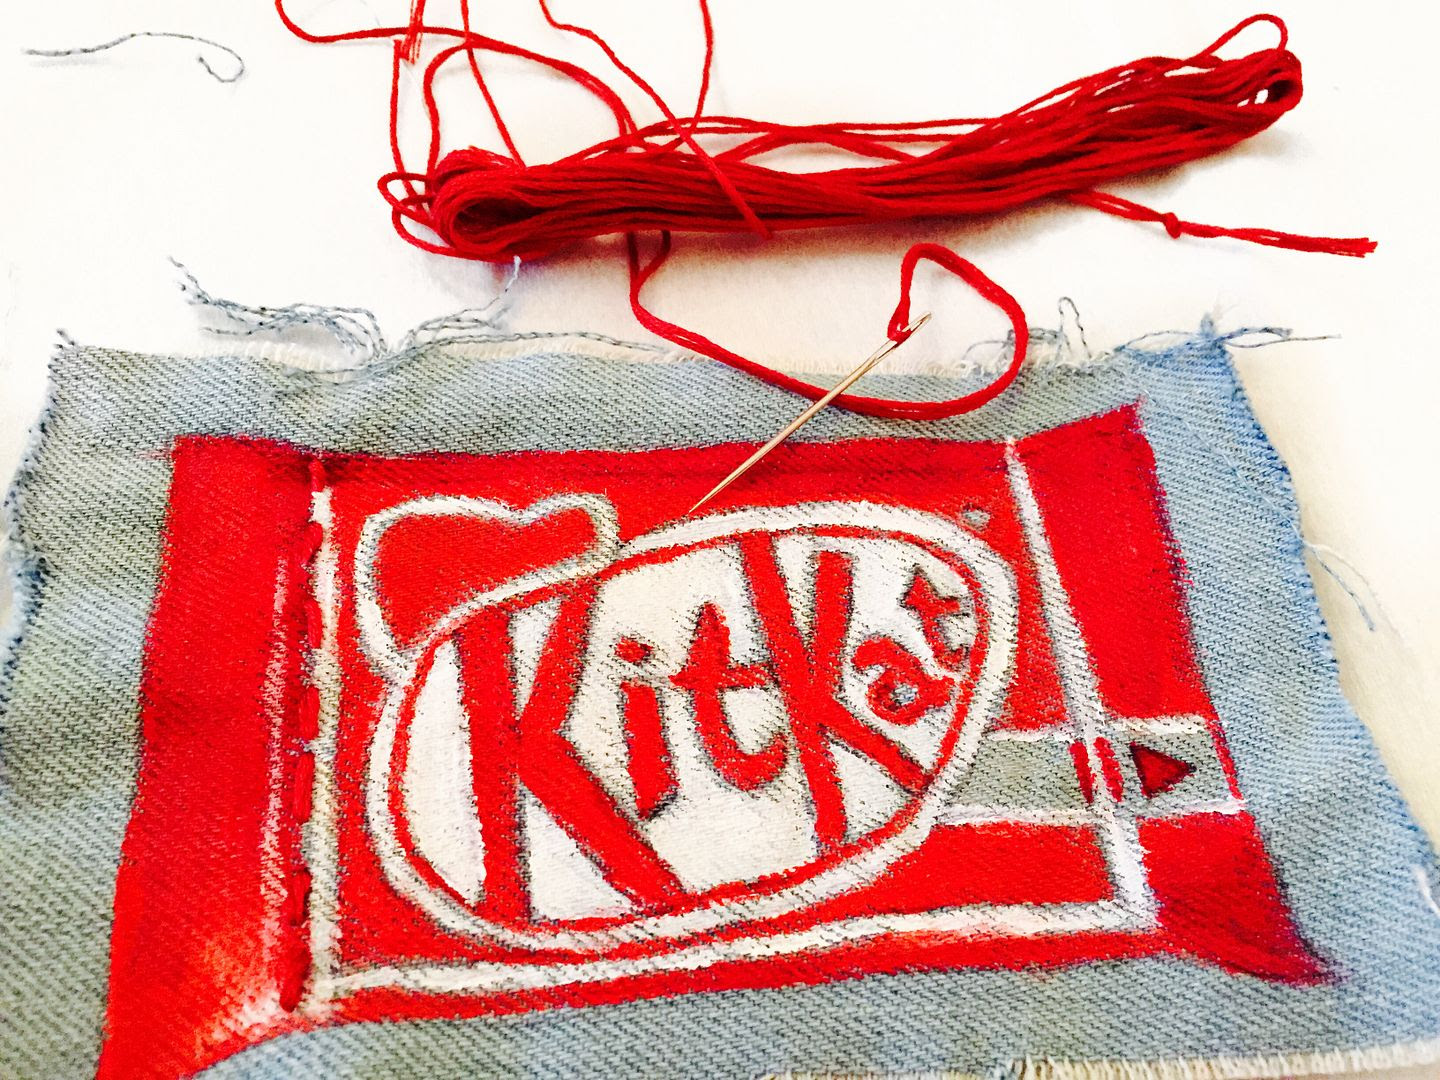 photo embroidery kitkat 4x6-beckermanblog-chocolate bar jeans- beckermandiy-commonthread-chocolate day_zps15a2mbrv.jpg